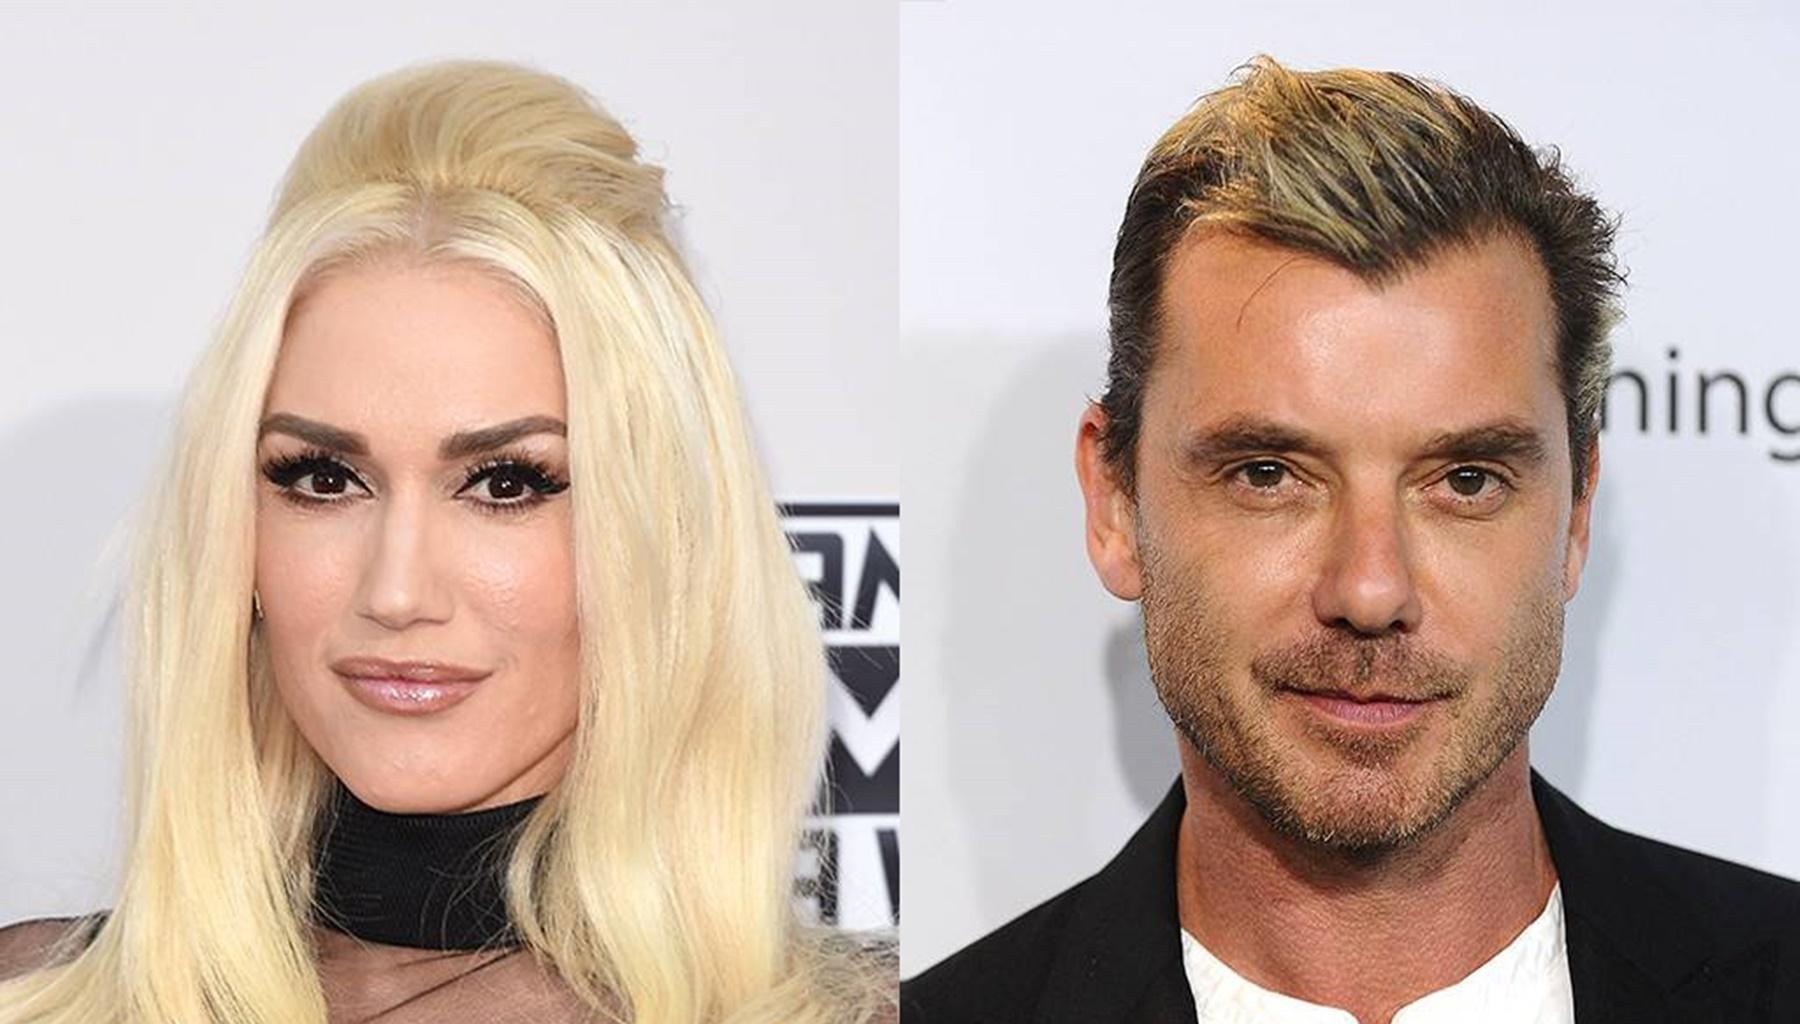 Gavin Rossdale's Life Is Not What You Imagine After Gwen Stefani And Sophia Thomalla Breakups